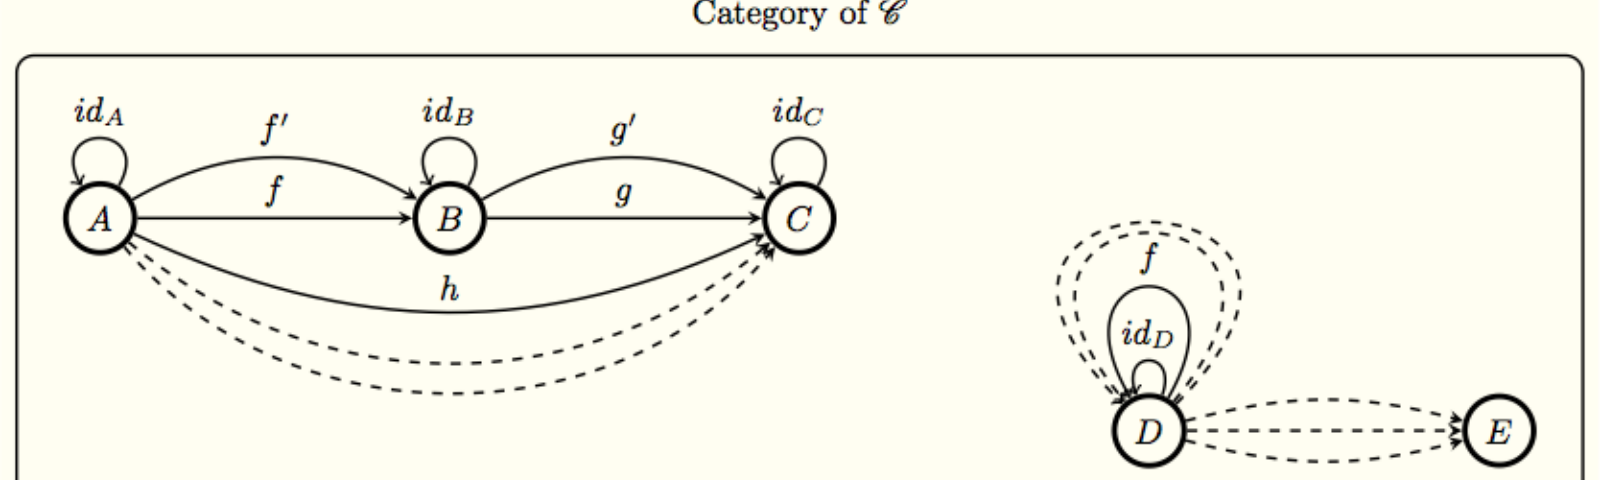 Making Sense Of Category Theory Ykode